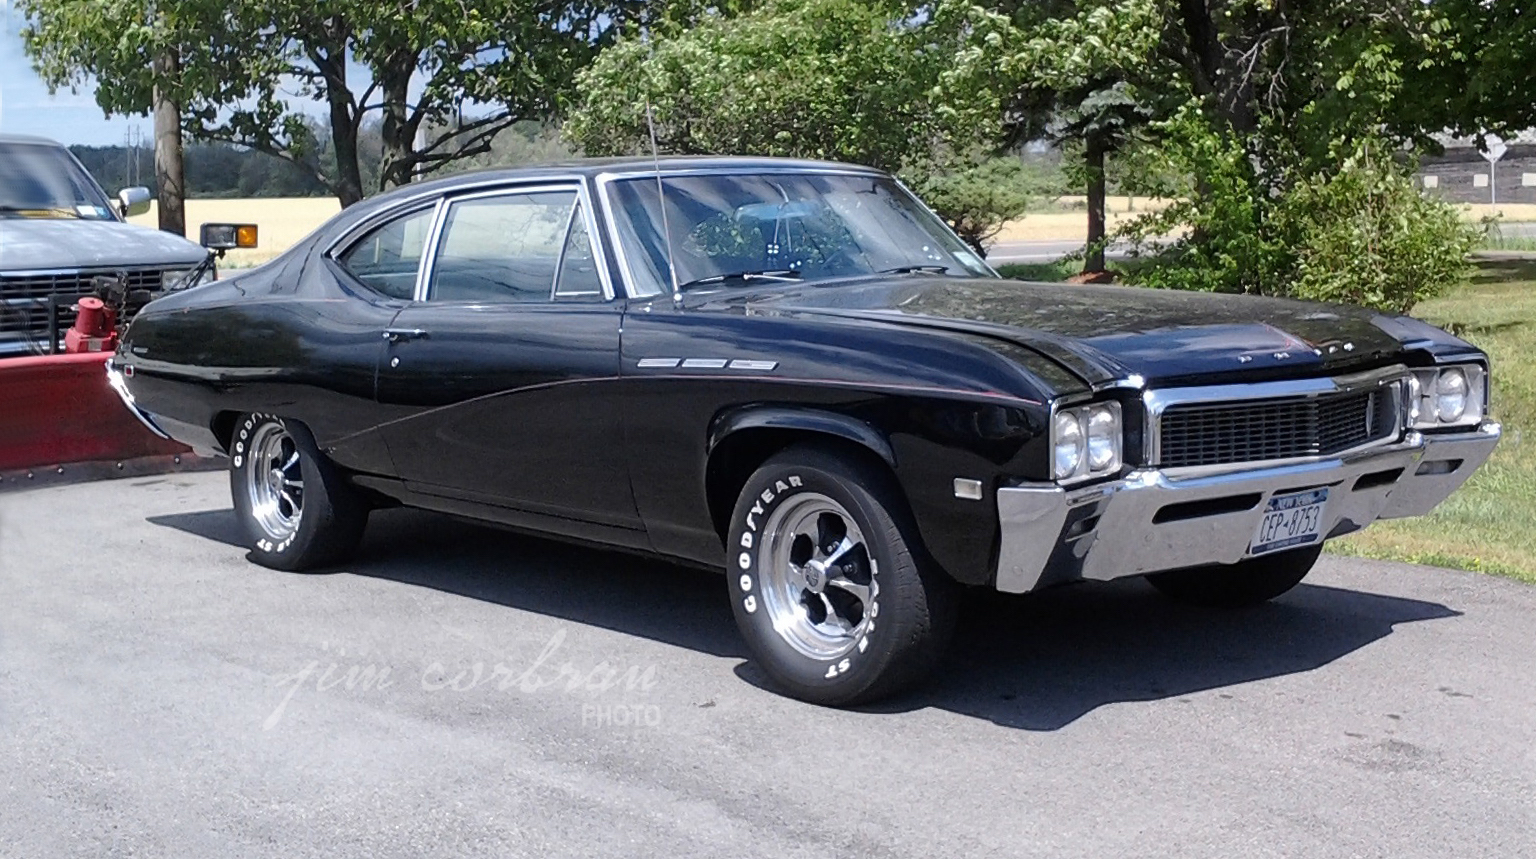 RealRides of WNY - 1969 Buick Special